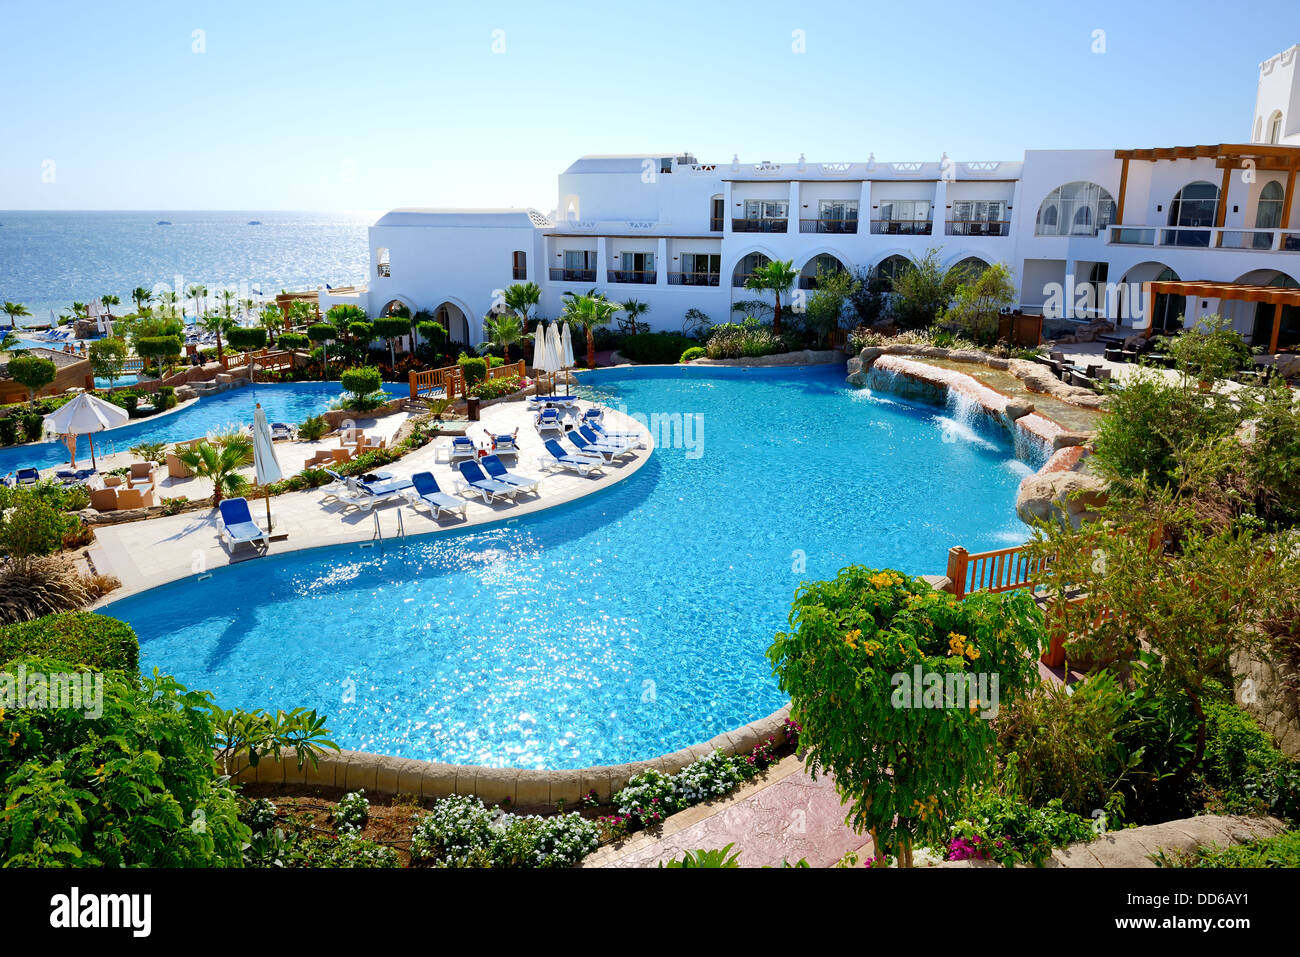 The Beach With Swimming Pools At Luxury Hotel Sharm El Sheikh Egypt Stock Photo Royalty Free